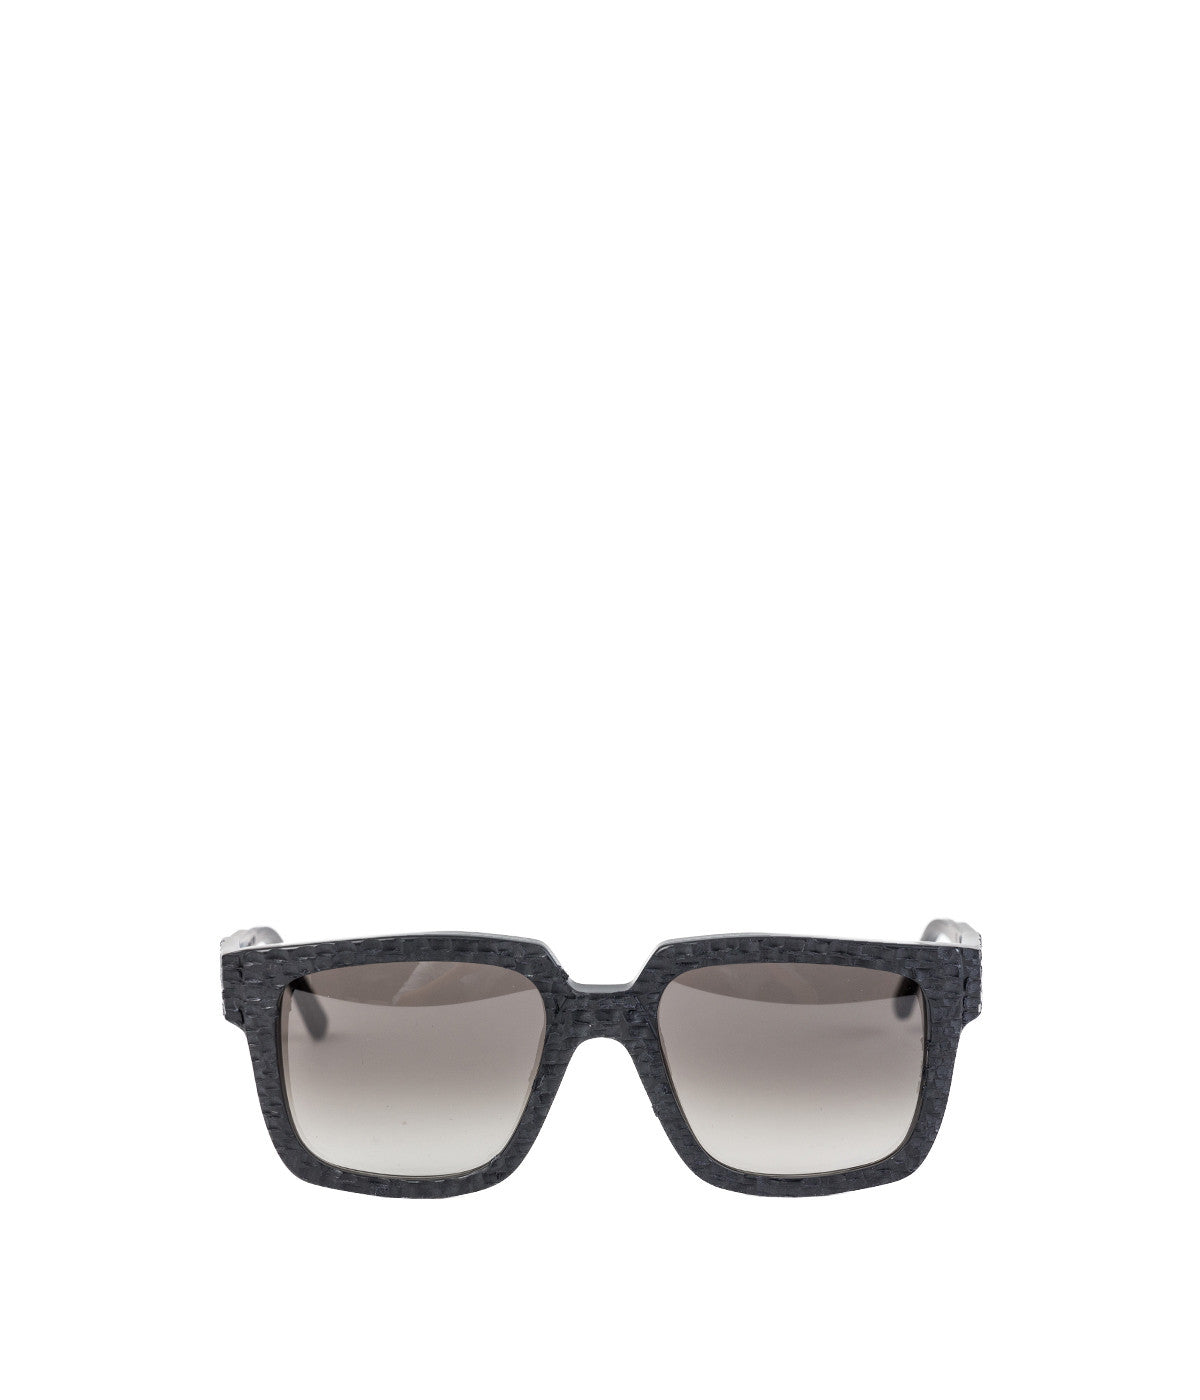 K3 BM ER Sun Black Carved Sunglasses